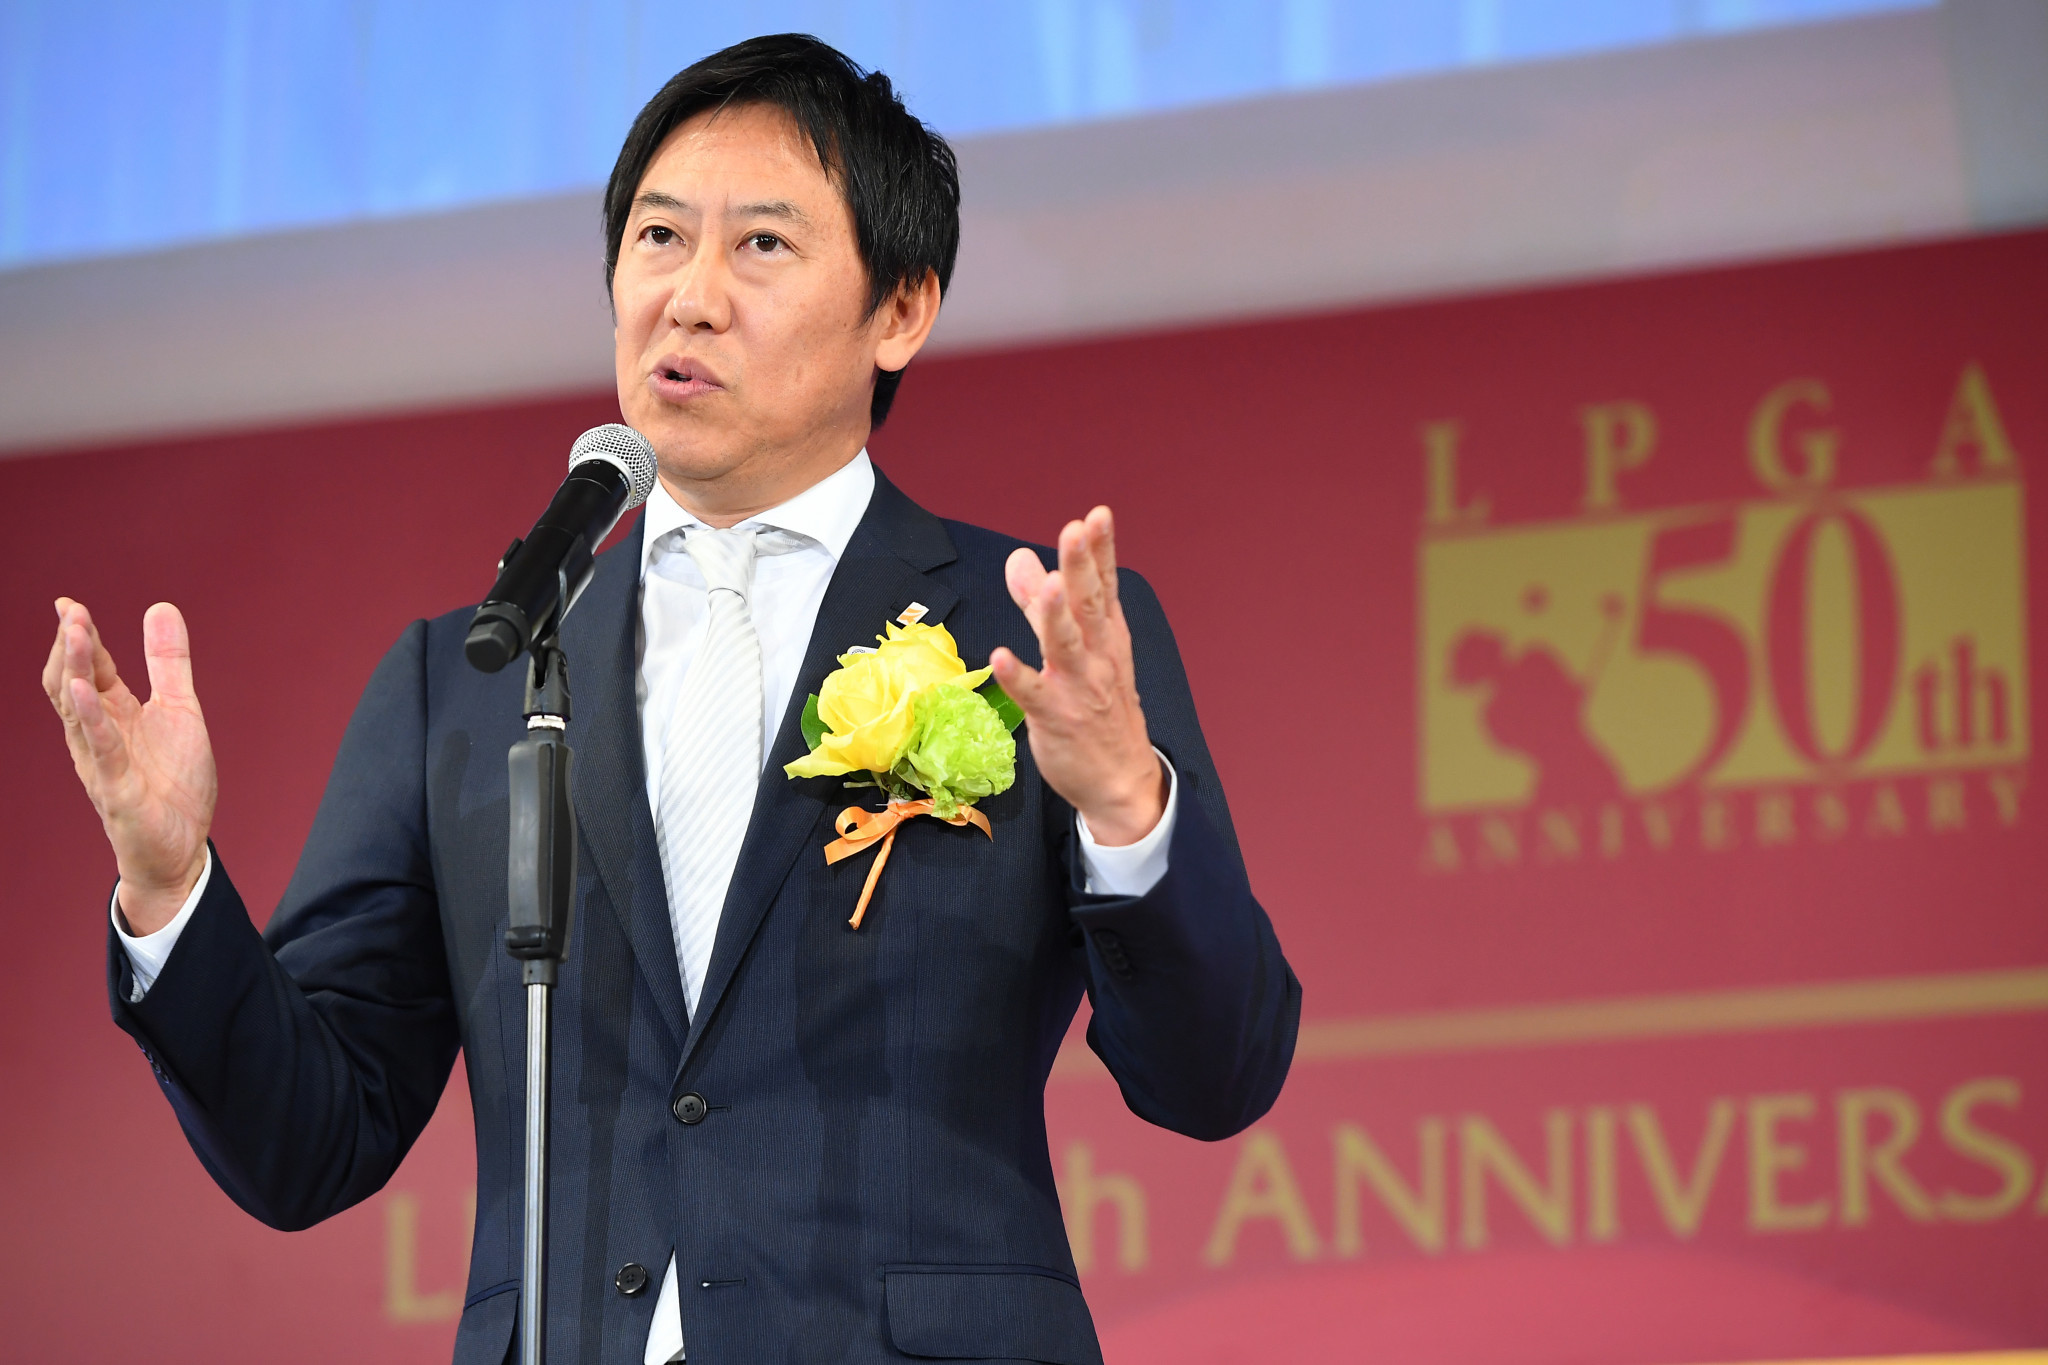 Japan Sports Agency commissioner Daichi Suzuki said he had never seen such a